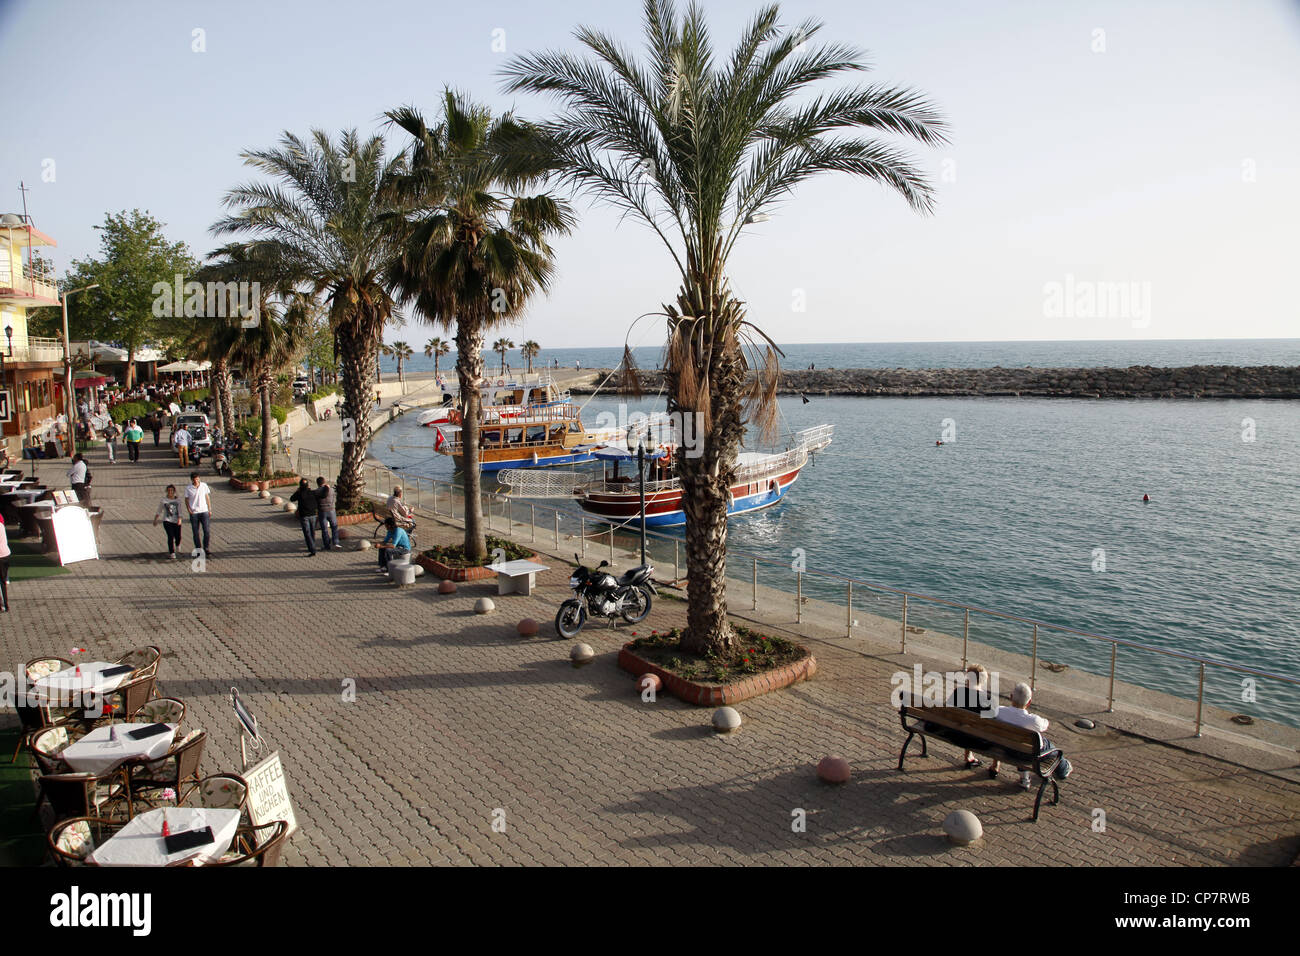 WATERFRONT & PALM TREES SIDE TURKEY 15 April 2012 - Stock Image